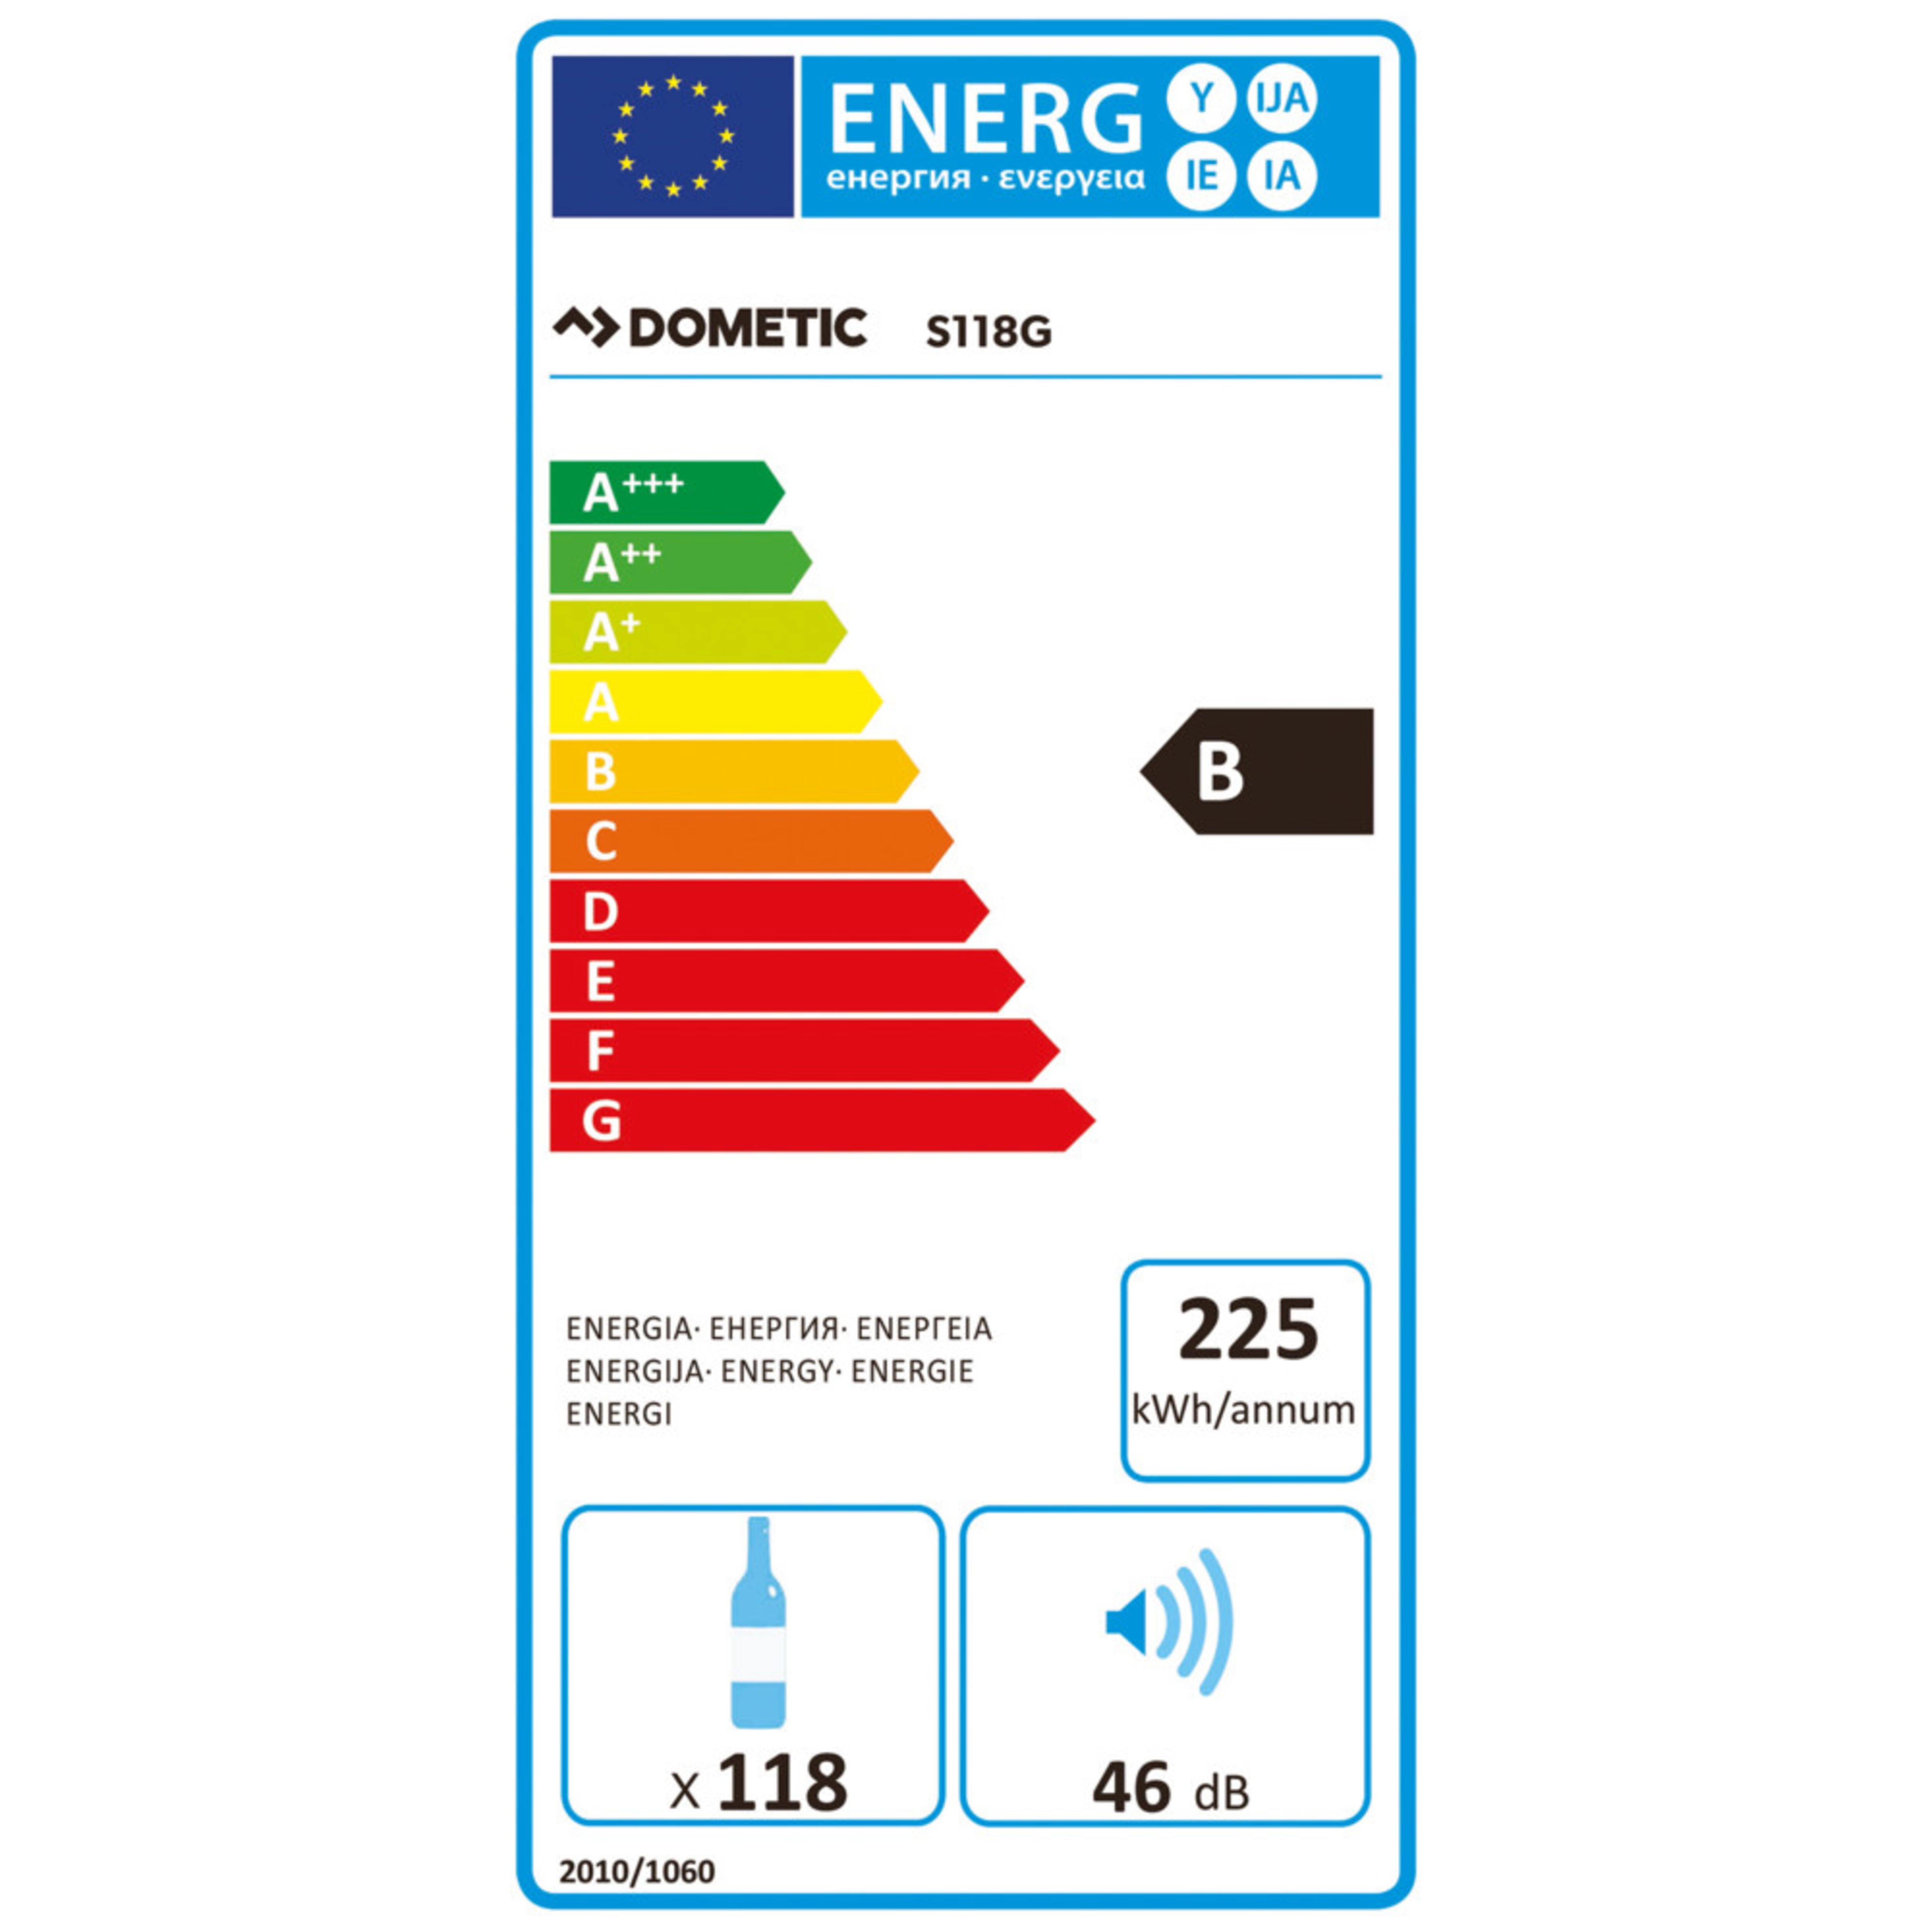 Dometic MaCave S118G Energy label